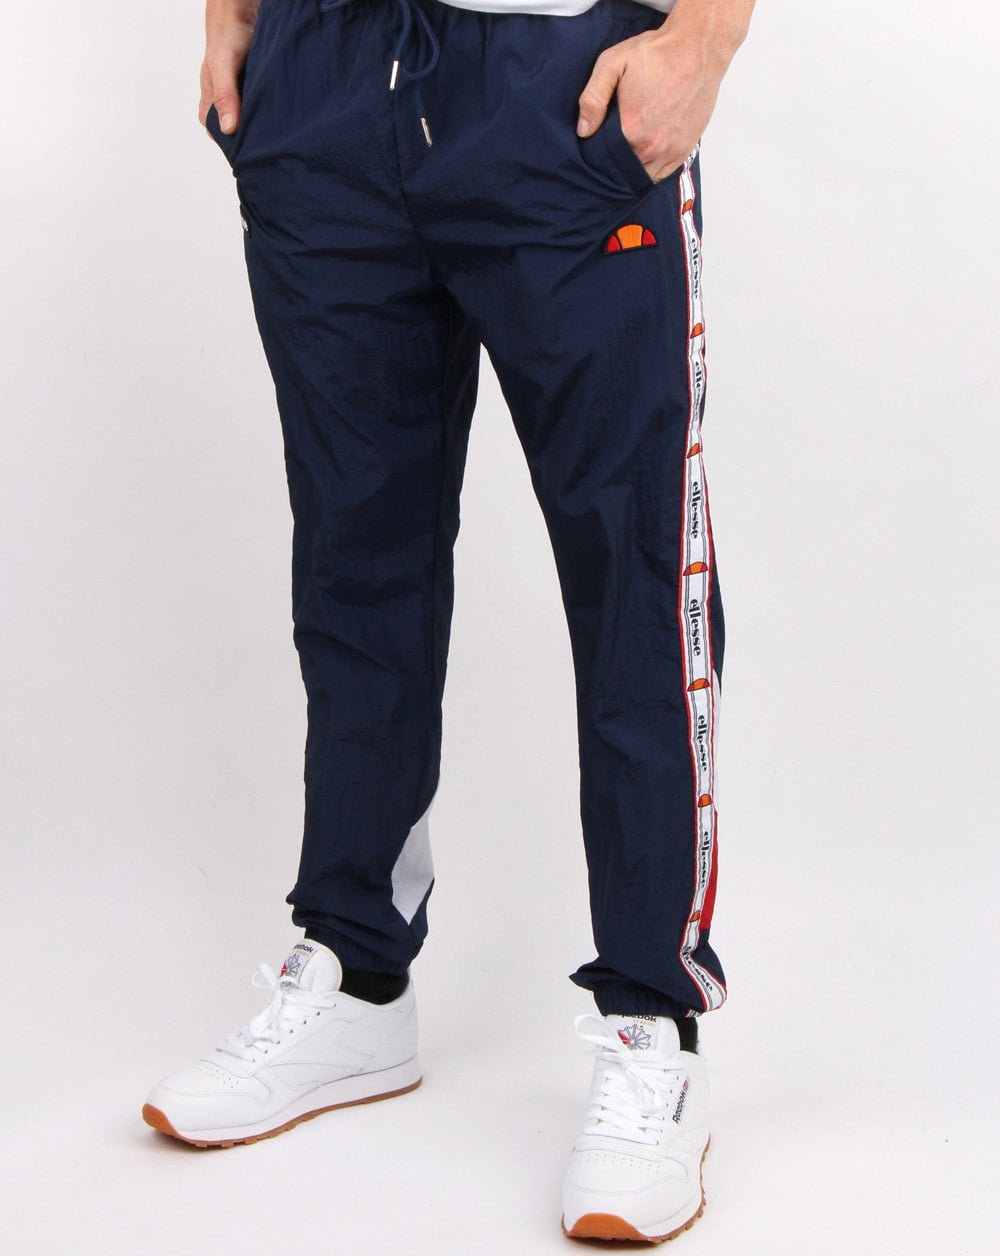 05fc91349abe Ellesse, Avico, Track Pants, Navy, Mens, Tracksuit, Comfort, Taping